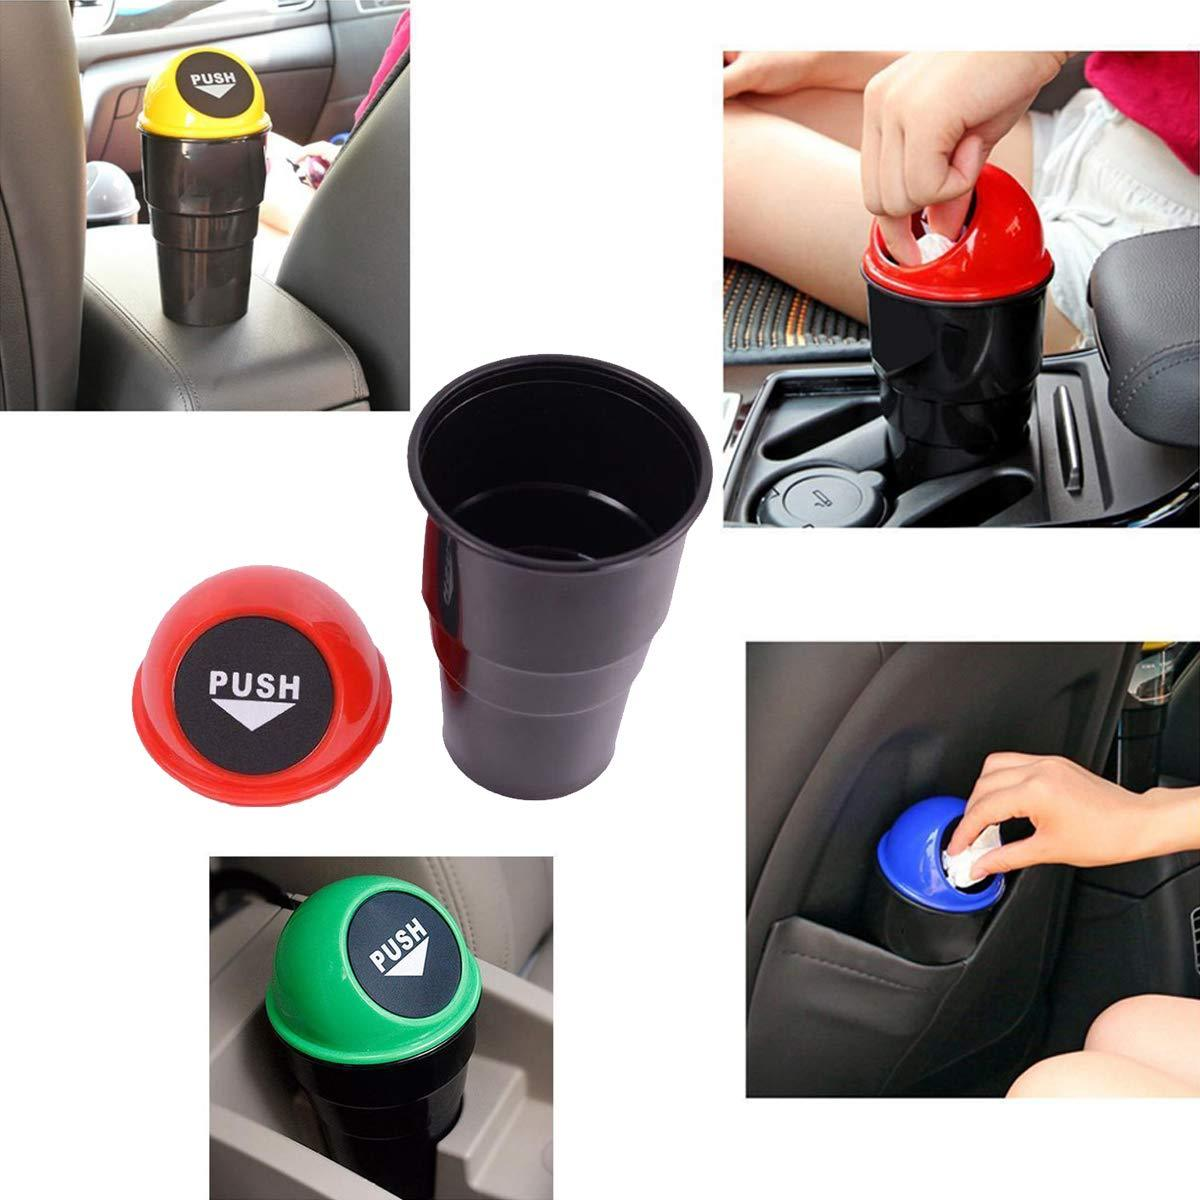 0537 Car Dustbin/Mini Car Trash Bin/Car Ashtray